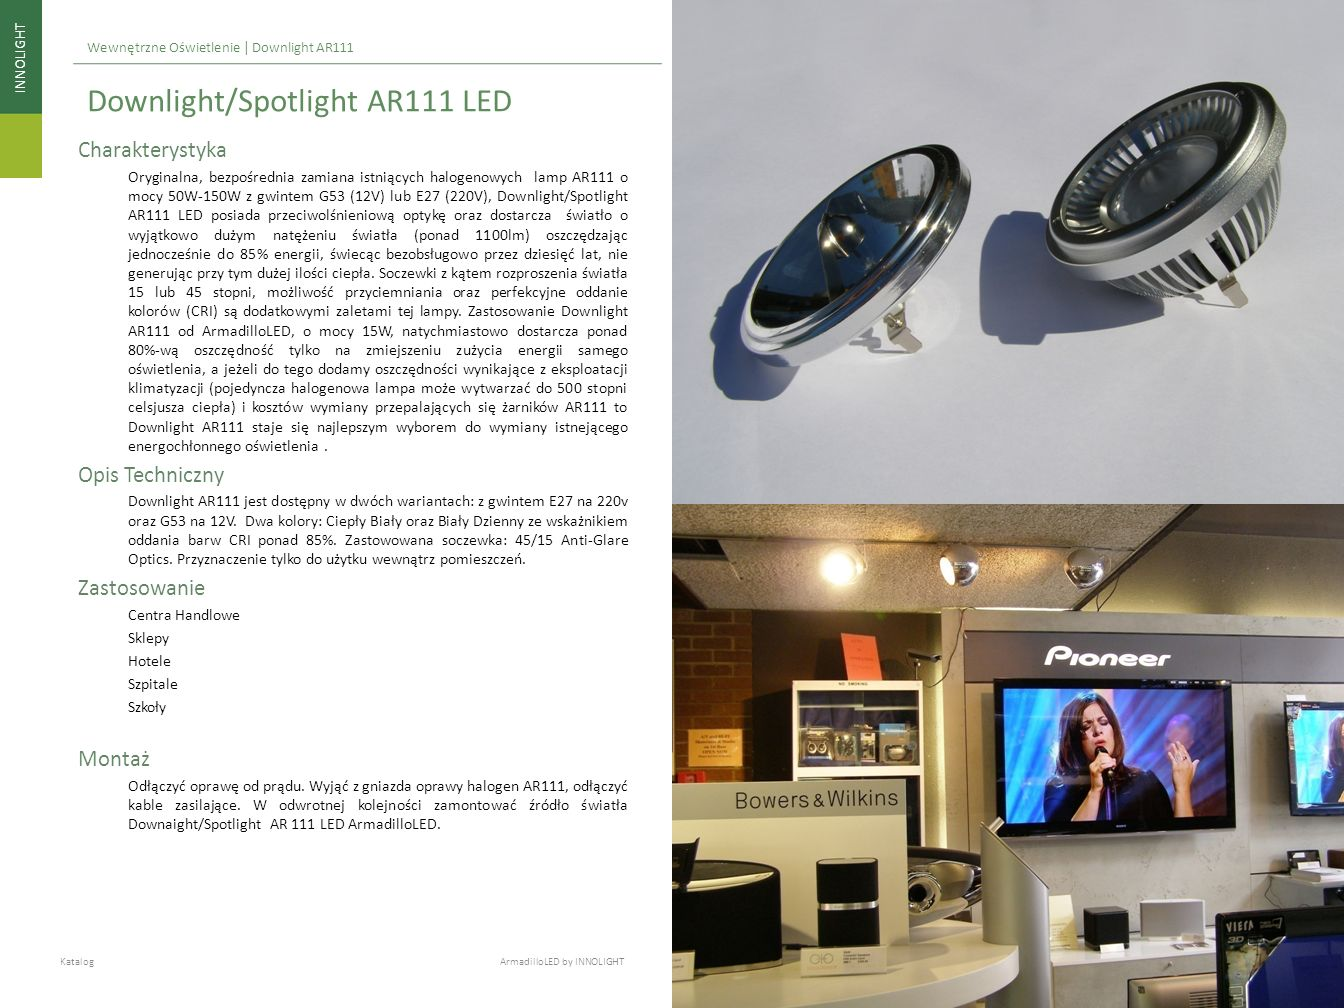 Downlight/Spotlight AR111 LED